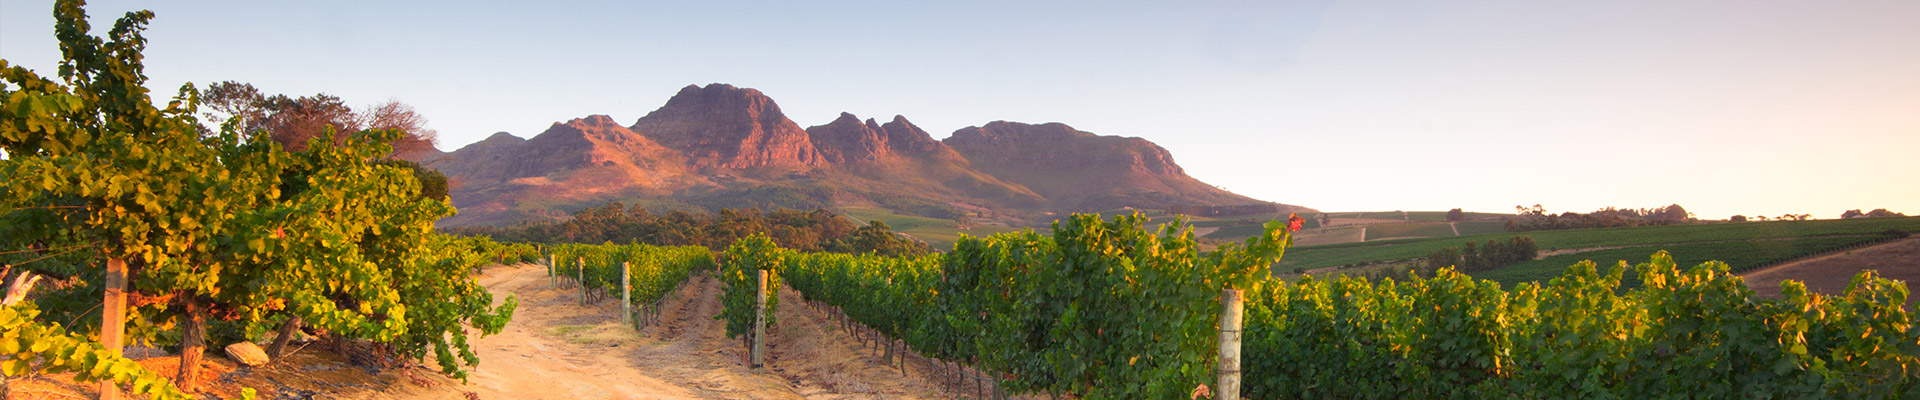 Helderberg mountain behind vineyards